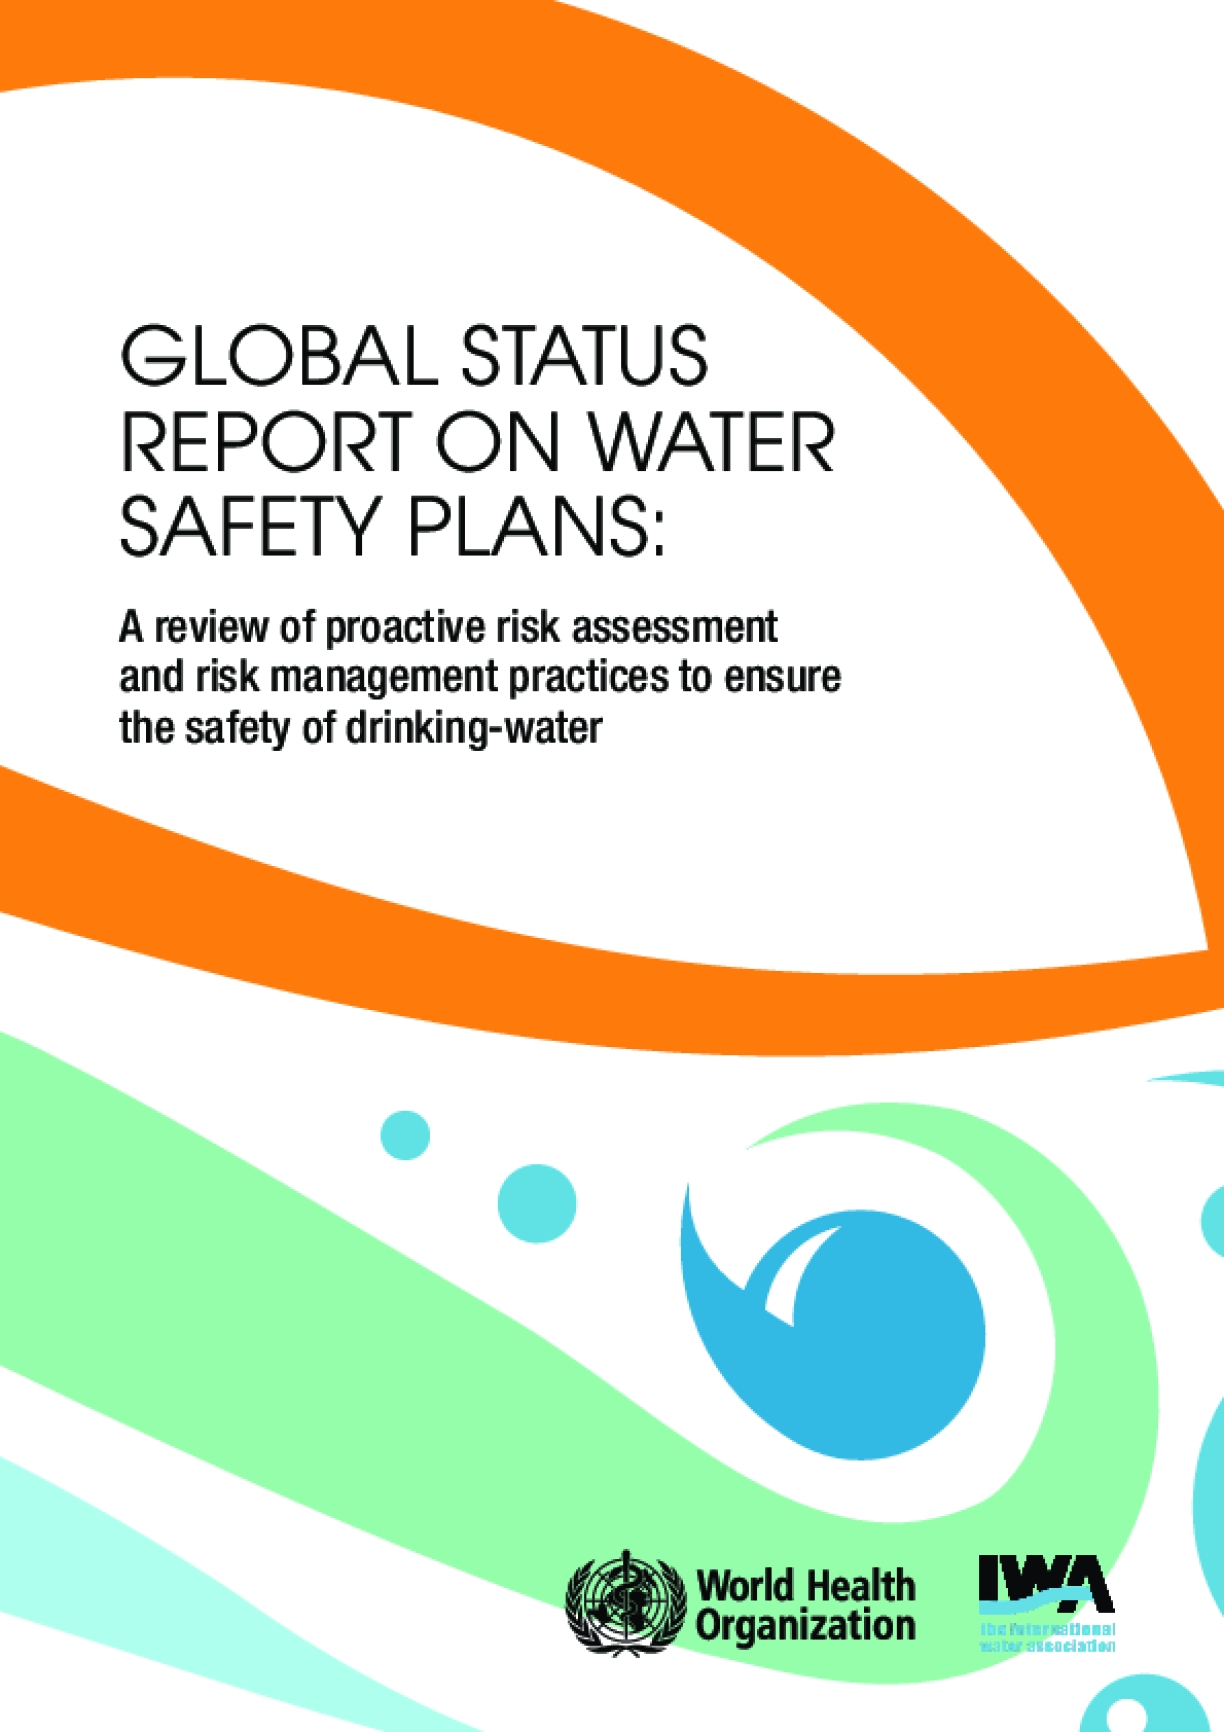 Global Status Report on Water Safety Plans: A Review of Proactive Risk Assessment and Risk Management Practices to Ensure the Safety of Drinking-Water